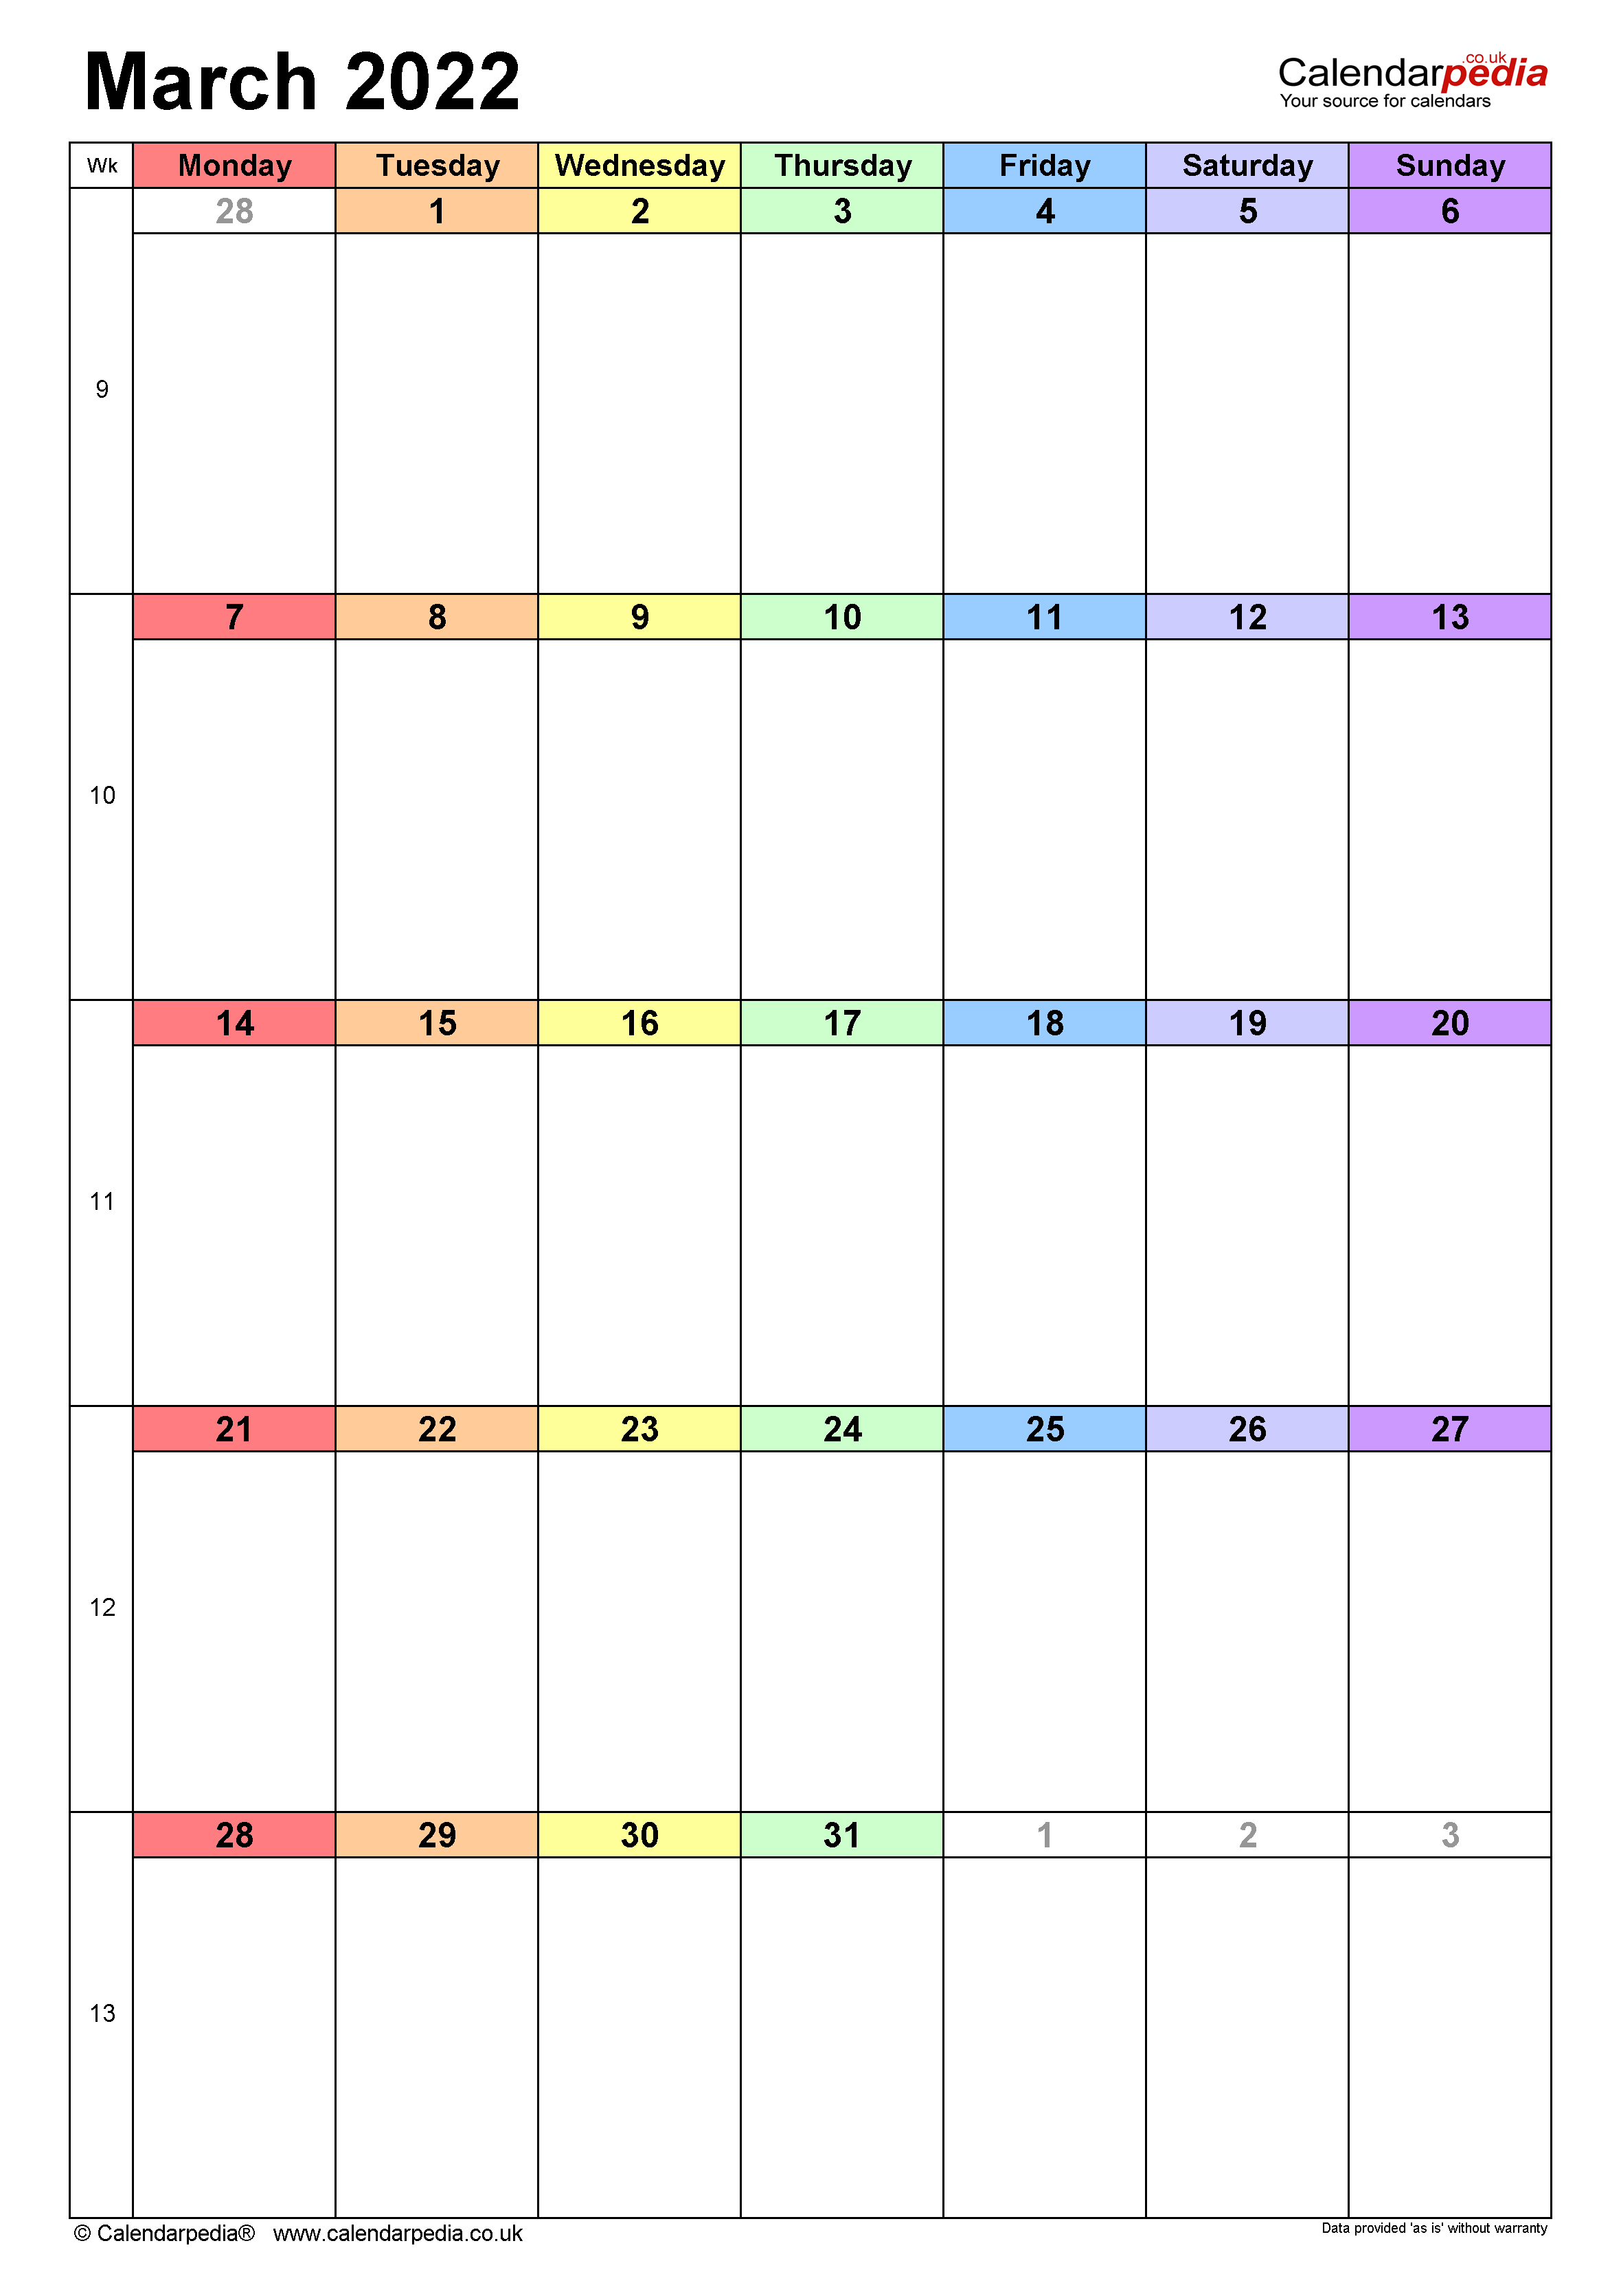 Calendar March 2022 Uk With Excel, Word And Pdf Templates For Printable Calendars 2022 March